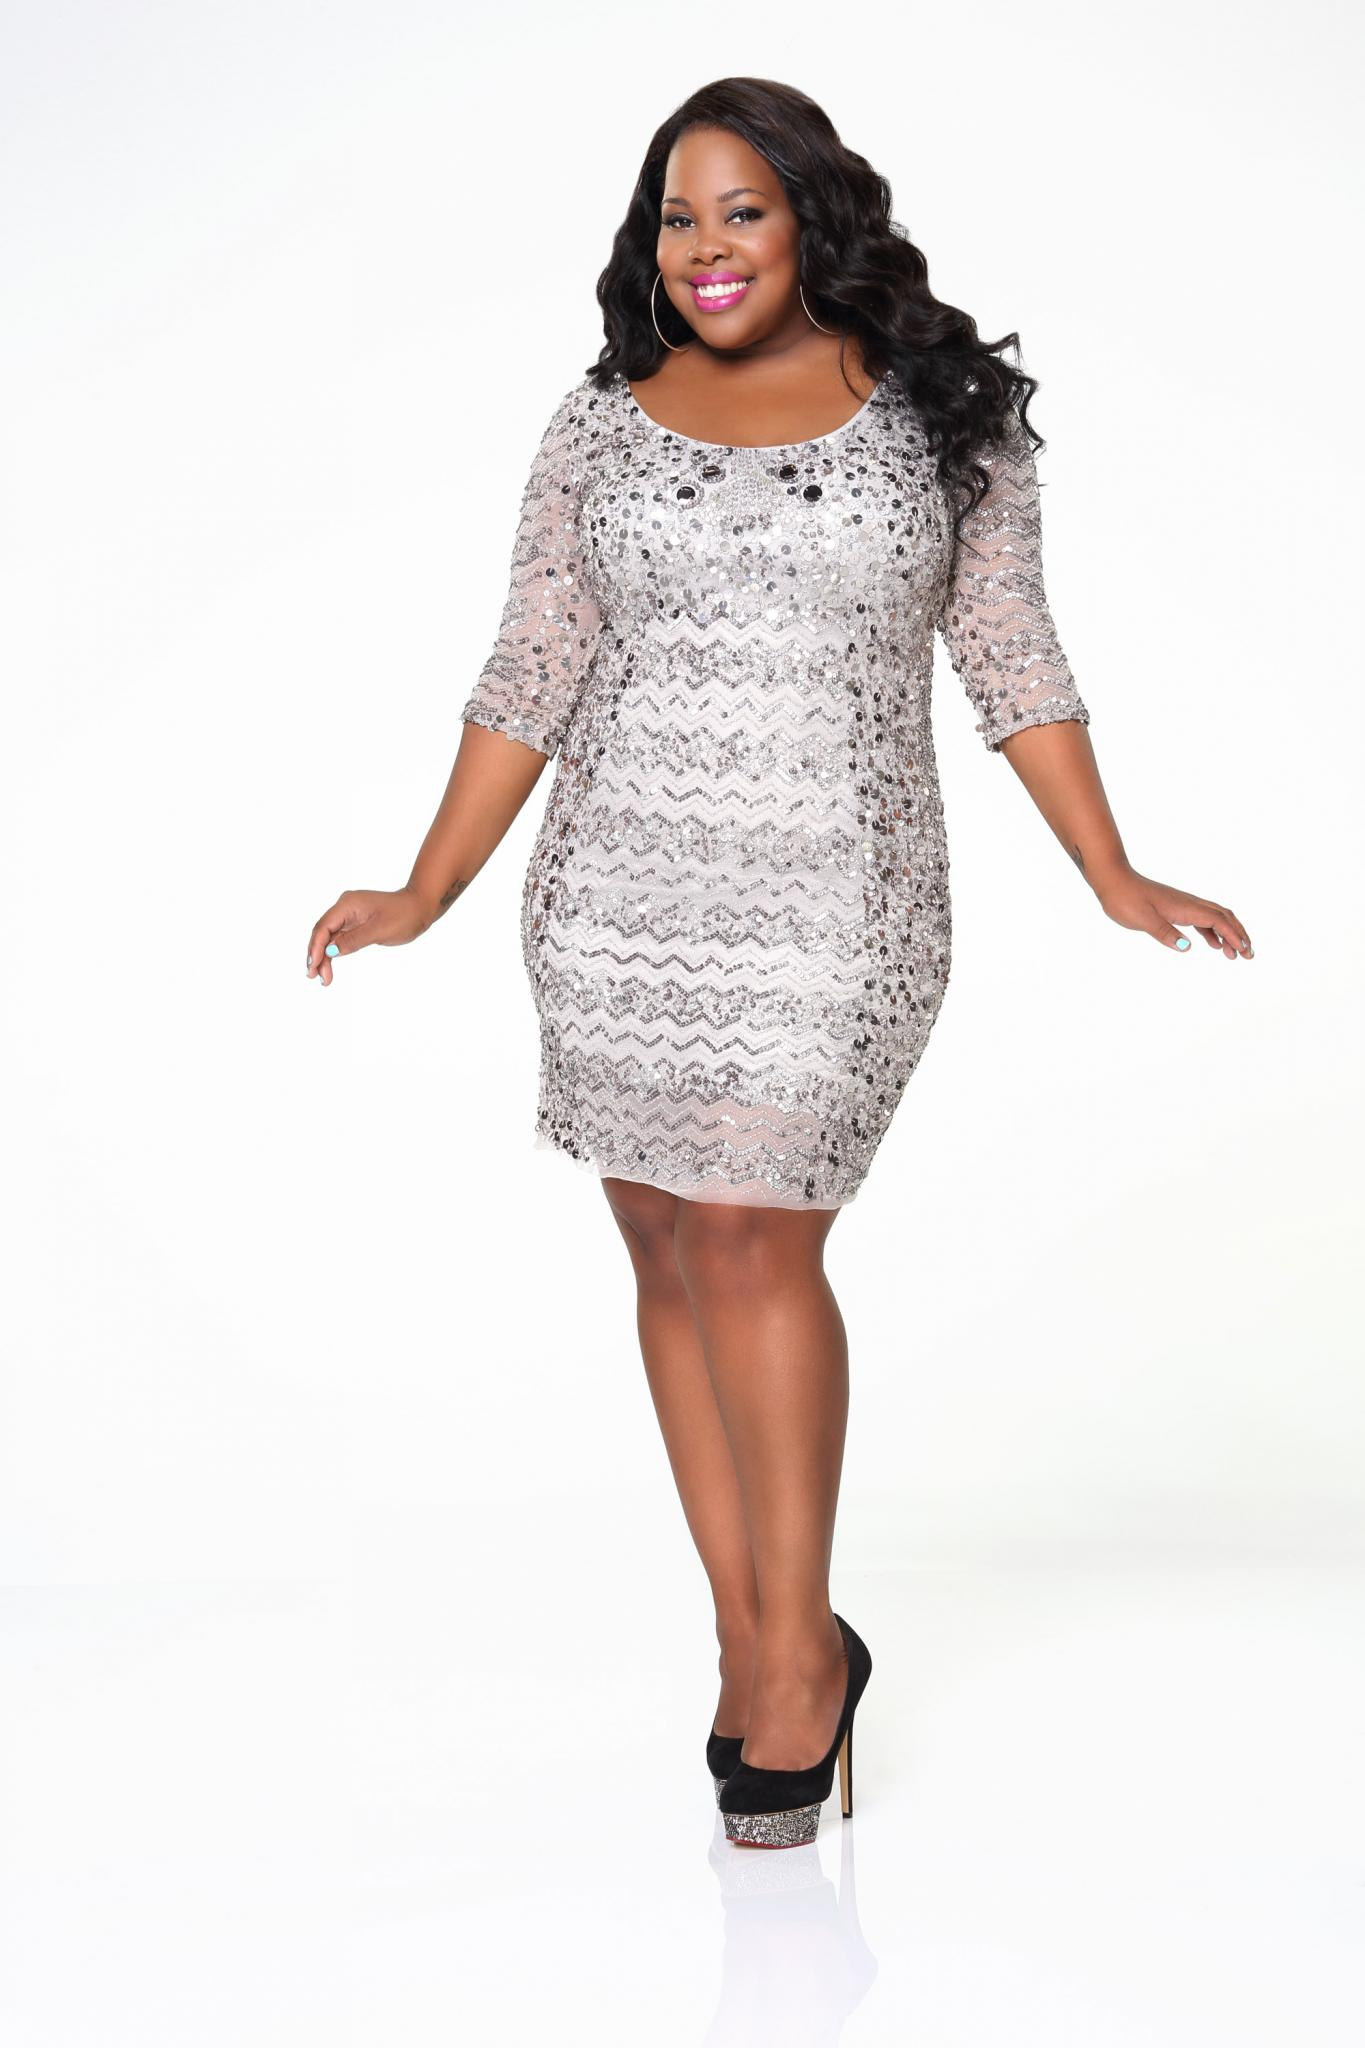 amber riley x factoramber riley freestyle, amber riley dancing with the stars, amber riley i look to you, amber riley colorblind, amber riley 2016, amber riley 2017, amber riley bust your windows, amber riley & derek hough, amber riley wiki, amber riley live, amber riley freestyle dance, amber riley beautiful, amber riley boyfriend, amber riley clothing line, amber riley vocal range, amber riley see your face, amber riley x factor, amber riley album solo, amber riley charleston, amber riley colorblind lyrics meaning